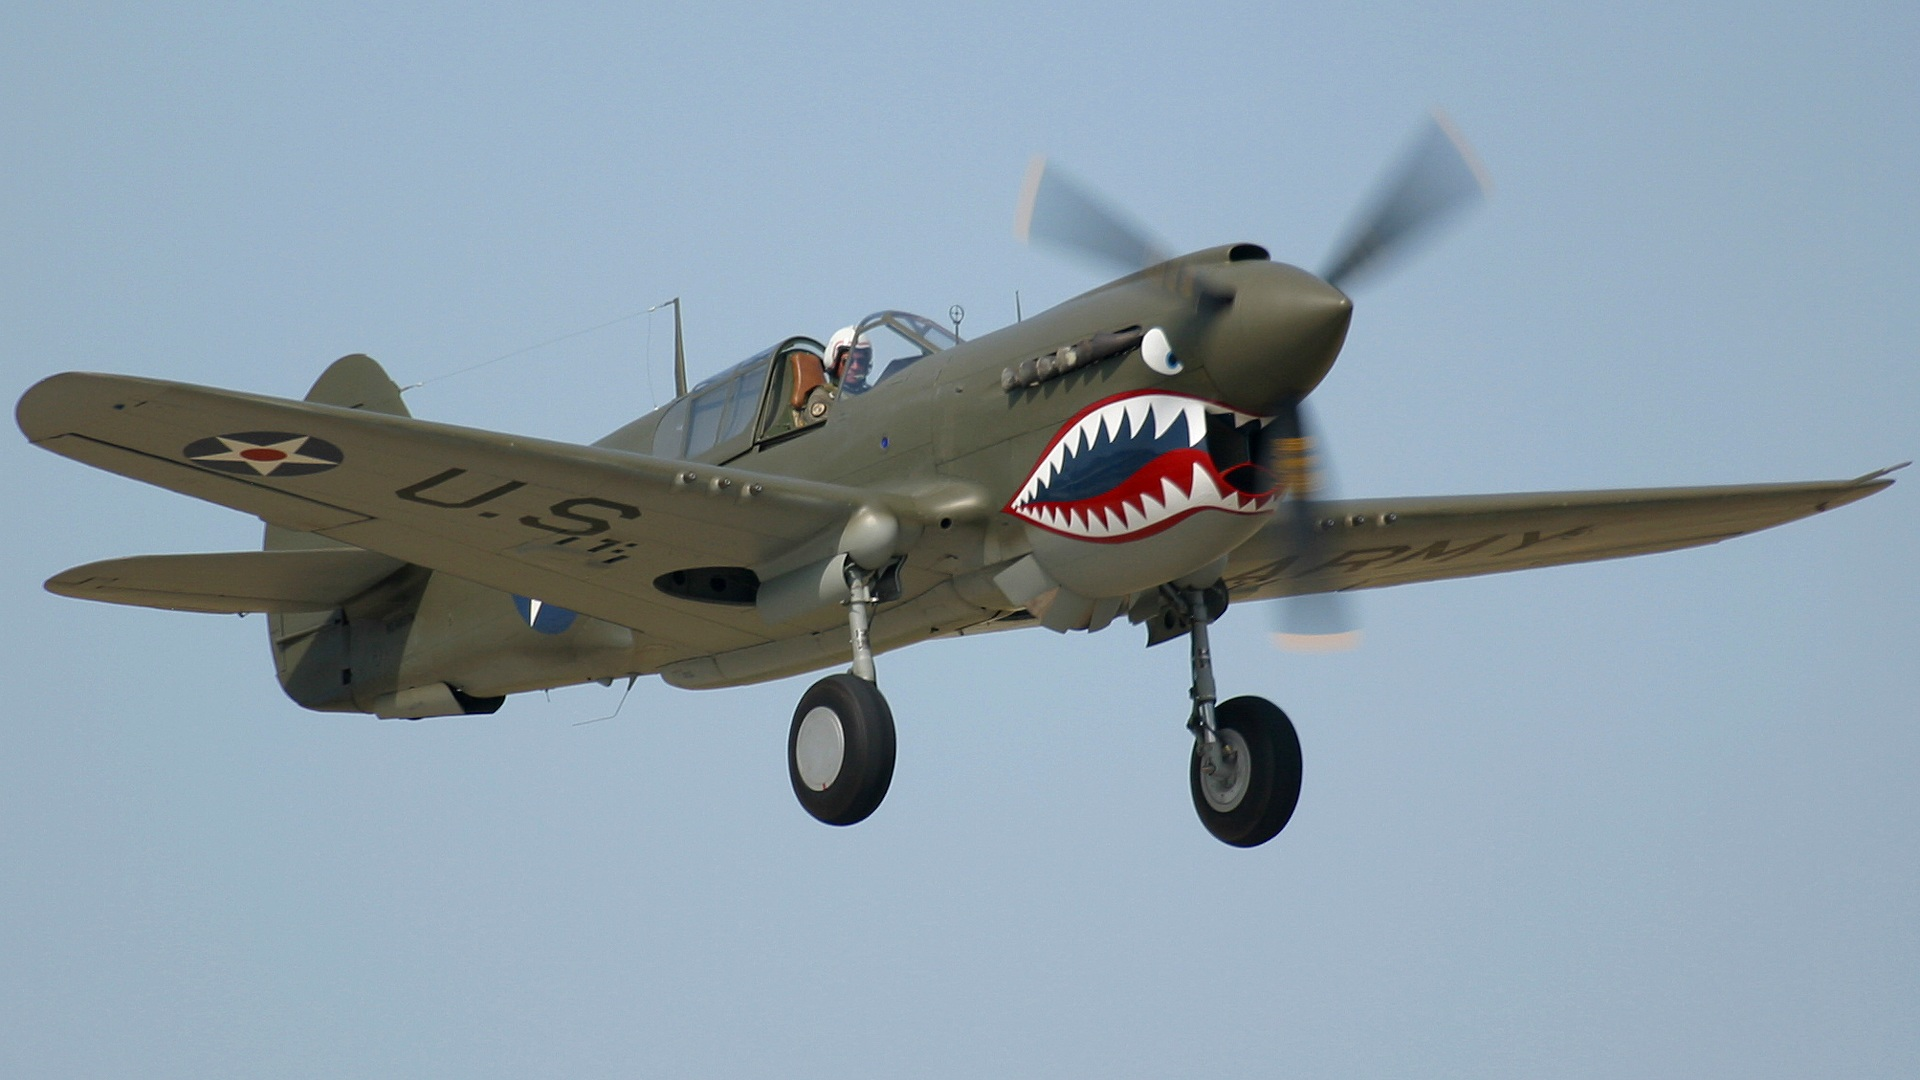 P40 Warhawk Photographed At The Oshkosh AirVenture 2002 Airshow Using A Canon D60 Digital Camera And